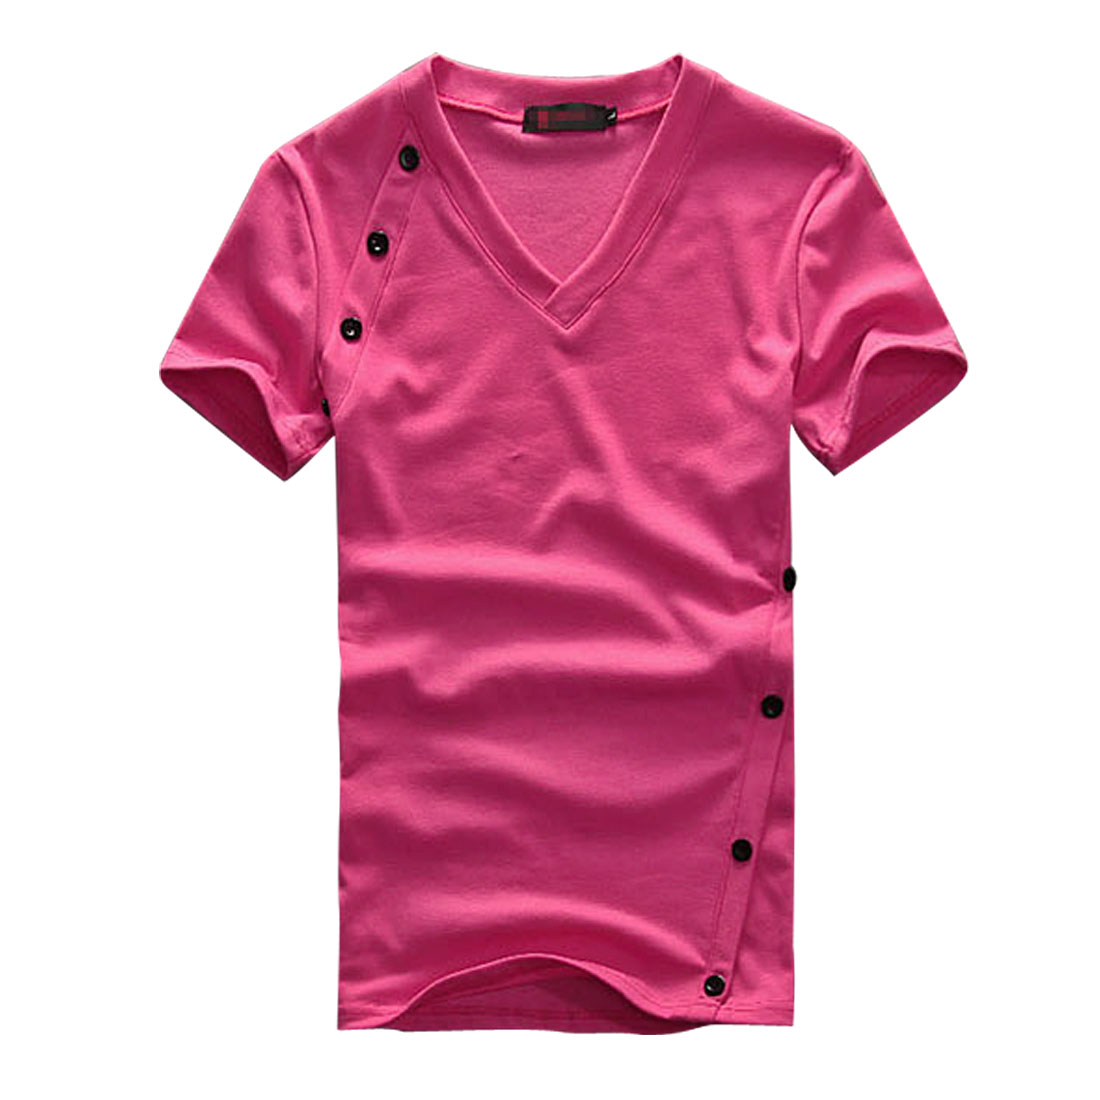 Men Fuchsia Stylish Summer New Buttons Decor Front Shirt Top S